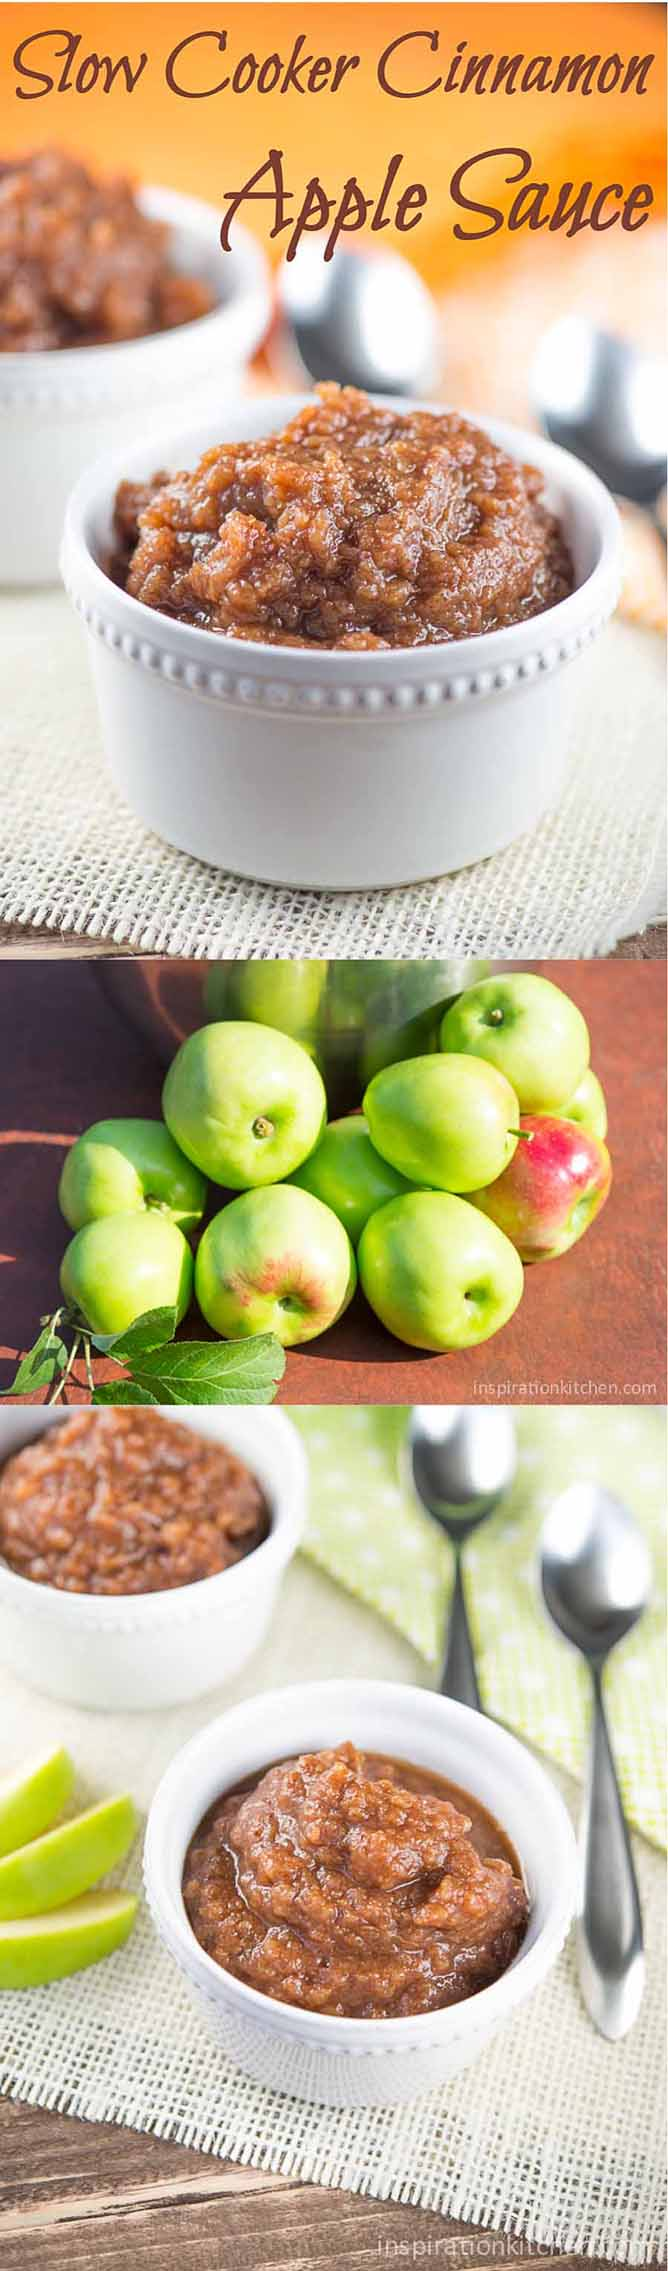 Slow Cooker Cinnamon Apple Sauce Collage | Inspiration Kitchen